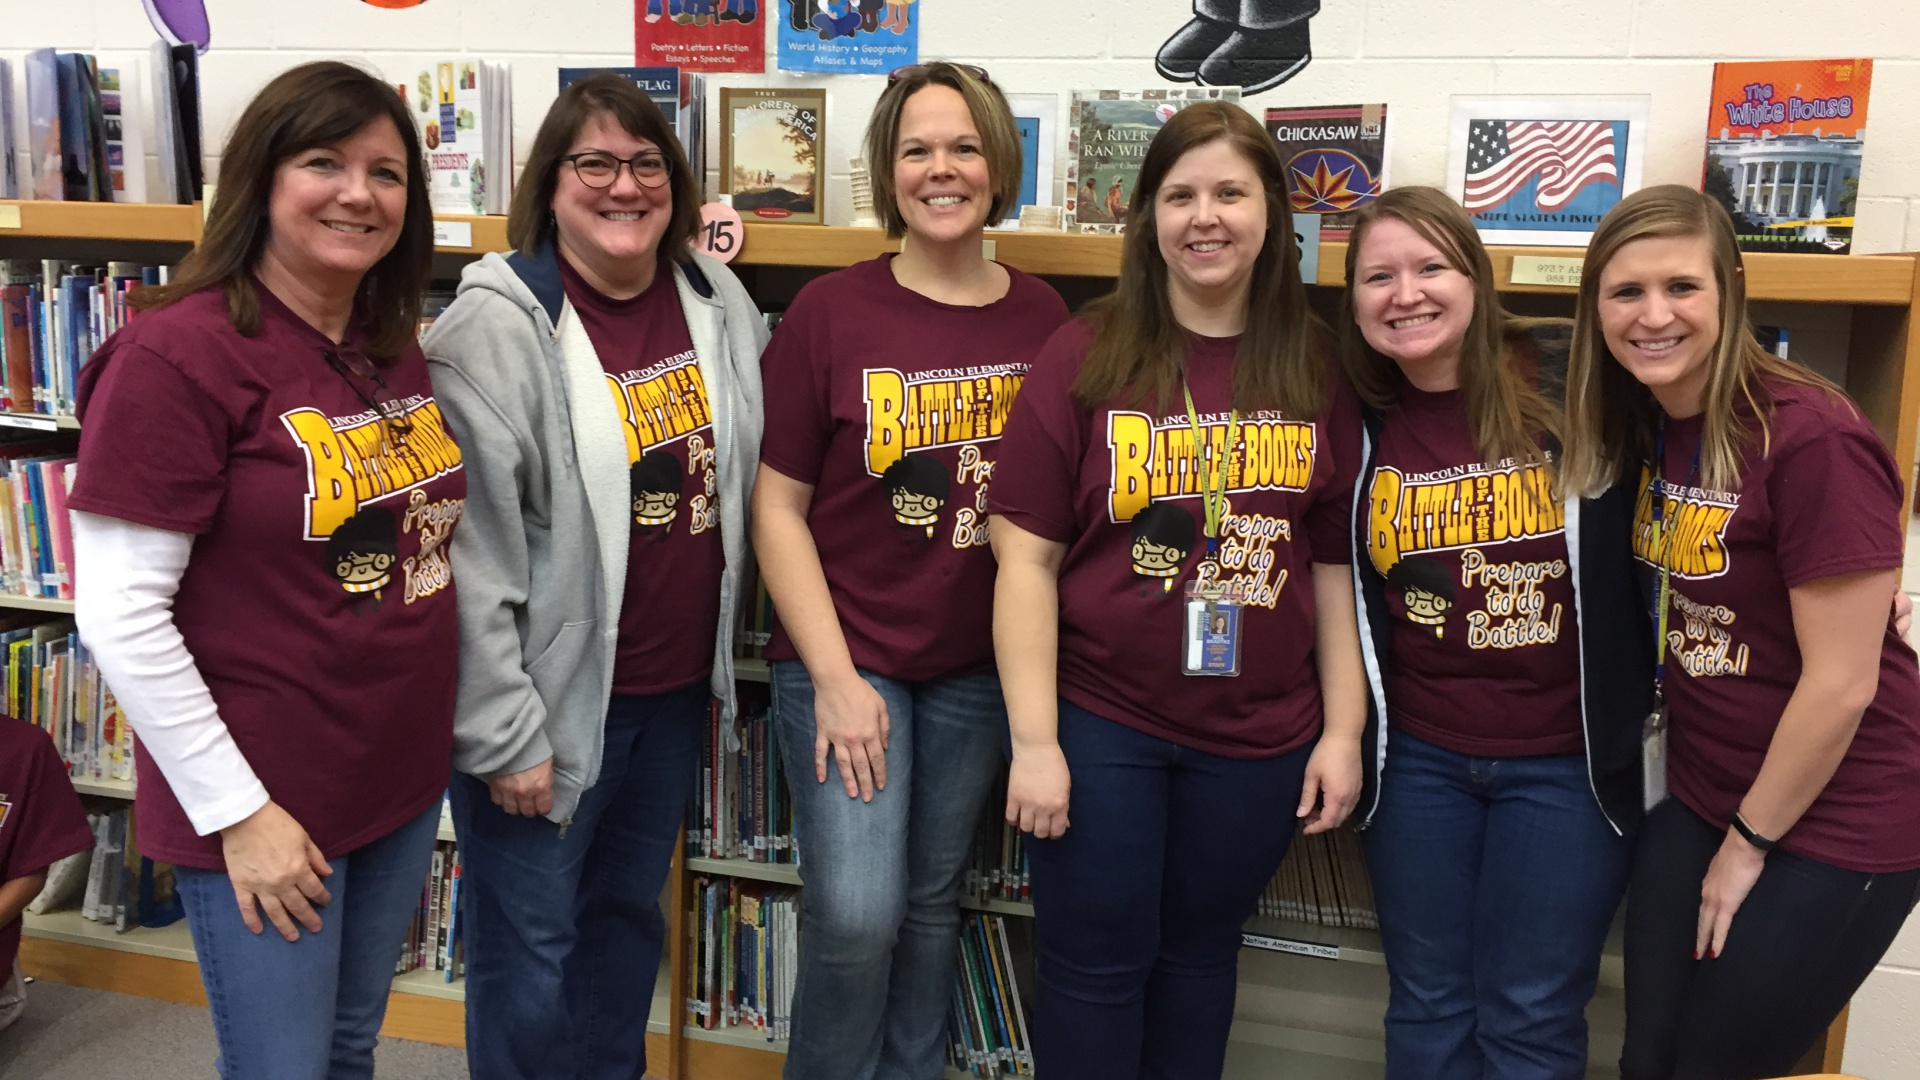 Battle of the Books - Staff Team